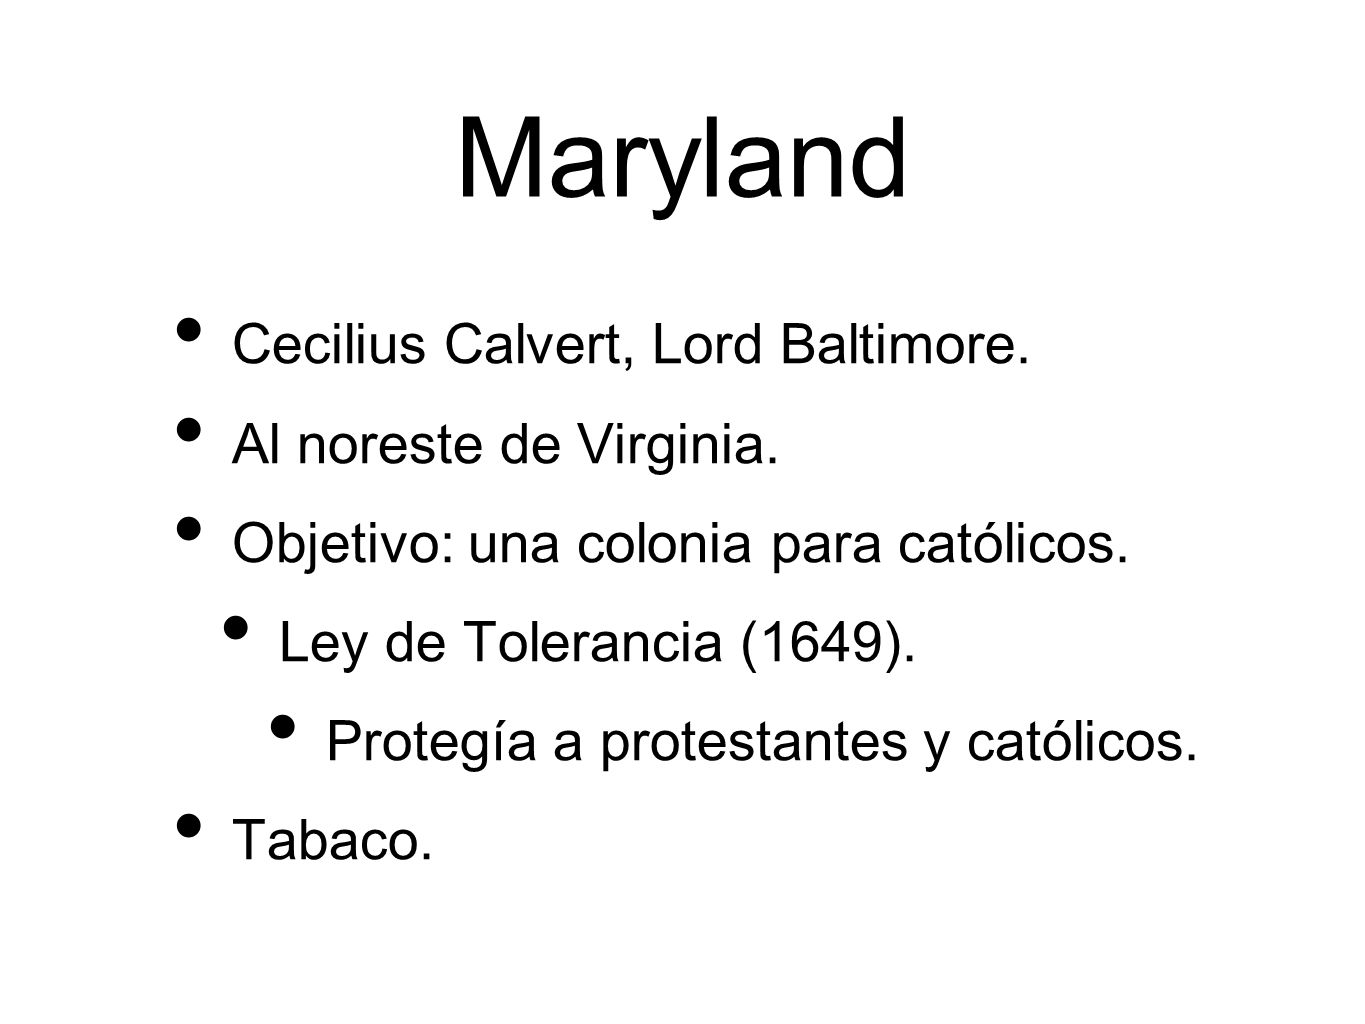 Maryland Cecilius Calvert, Lord Baltimore. Al noreste de Virginia.